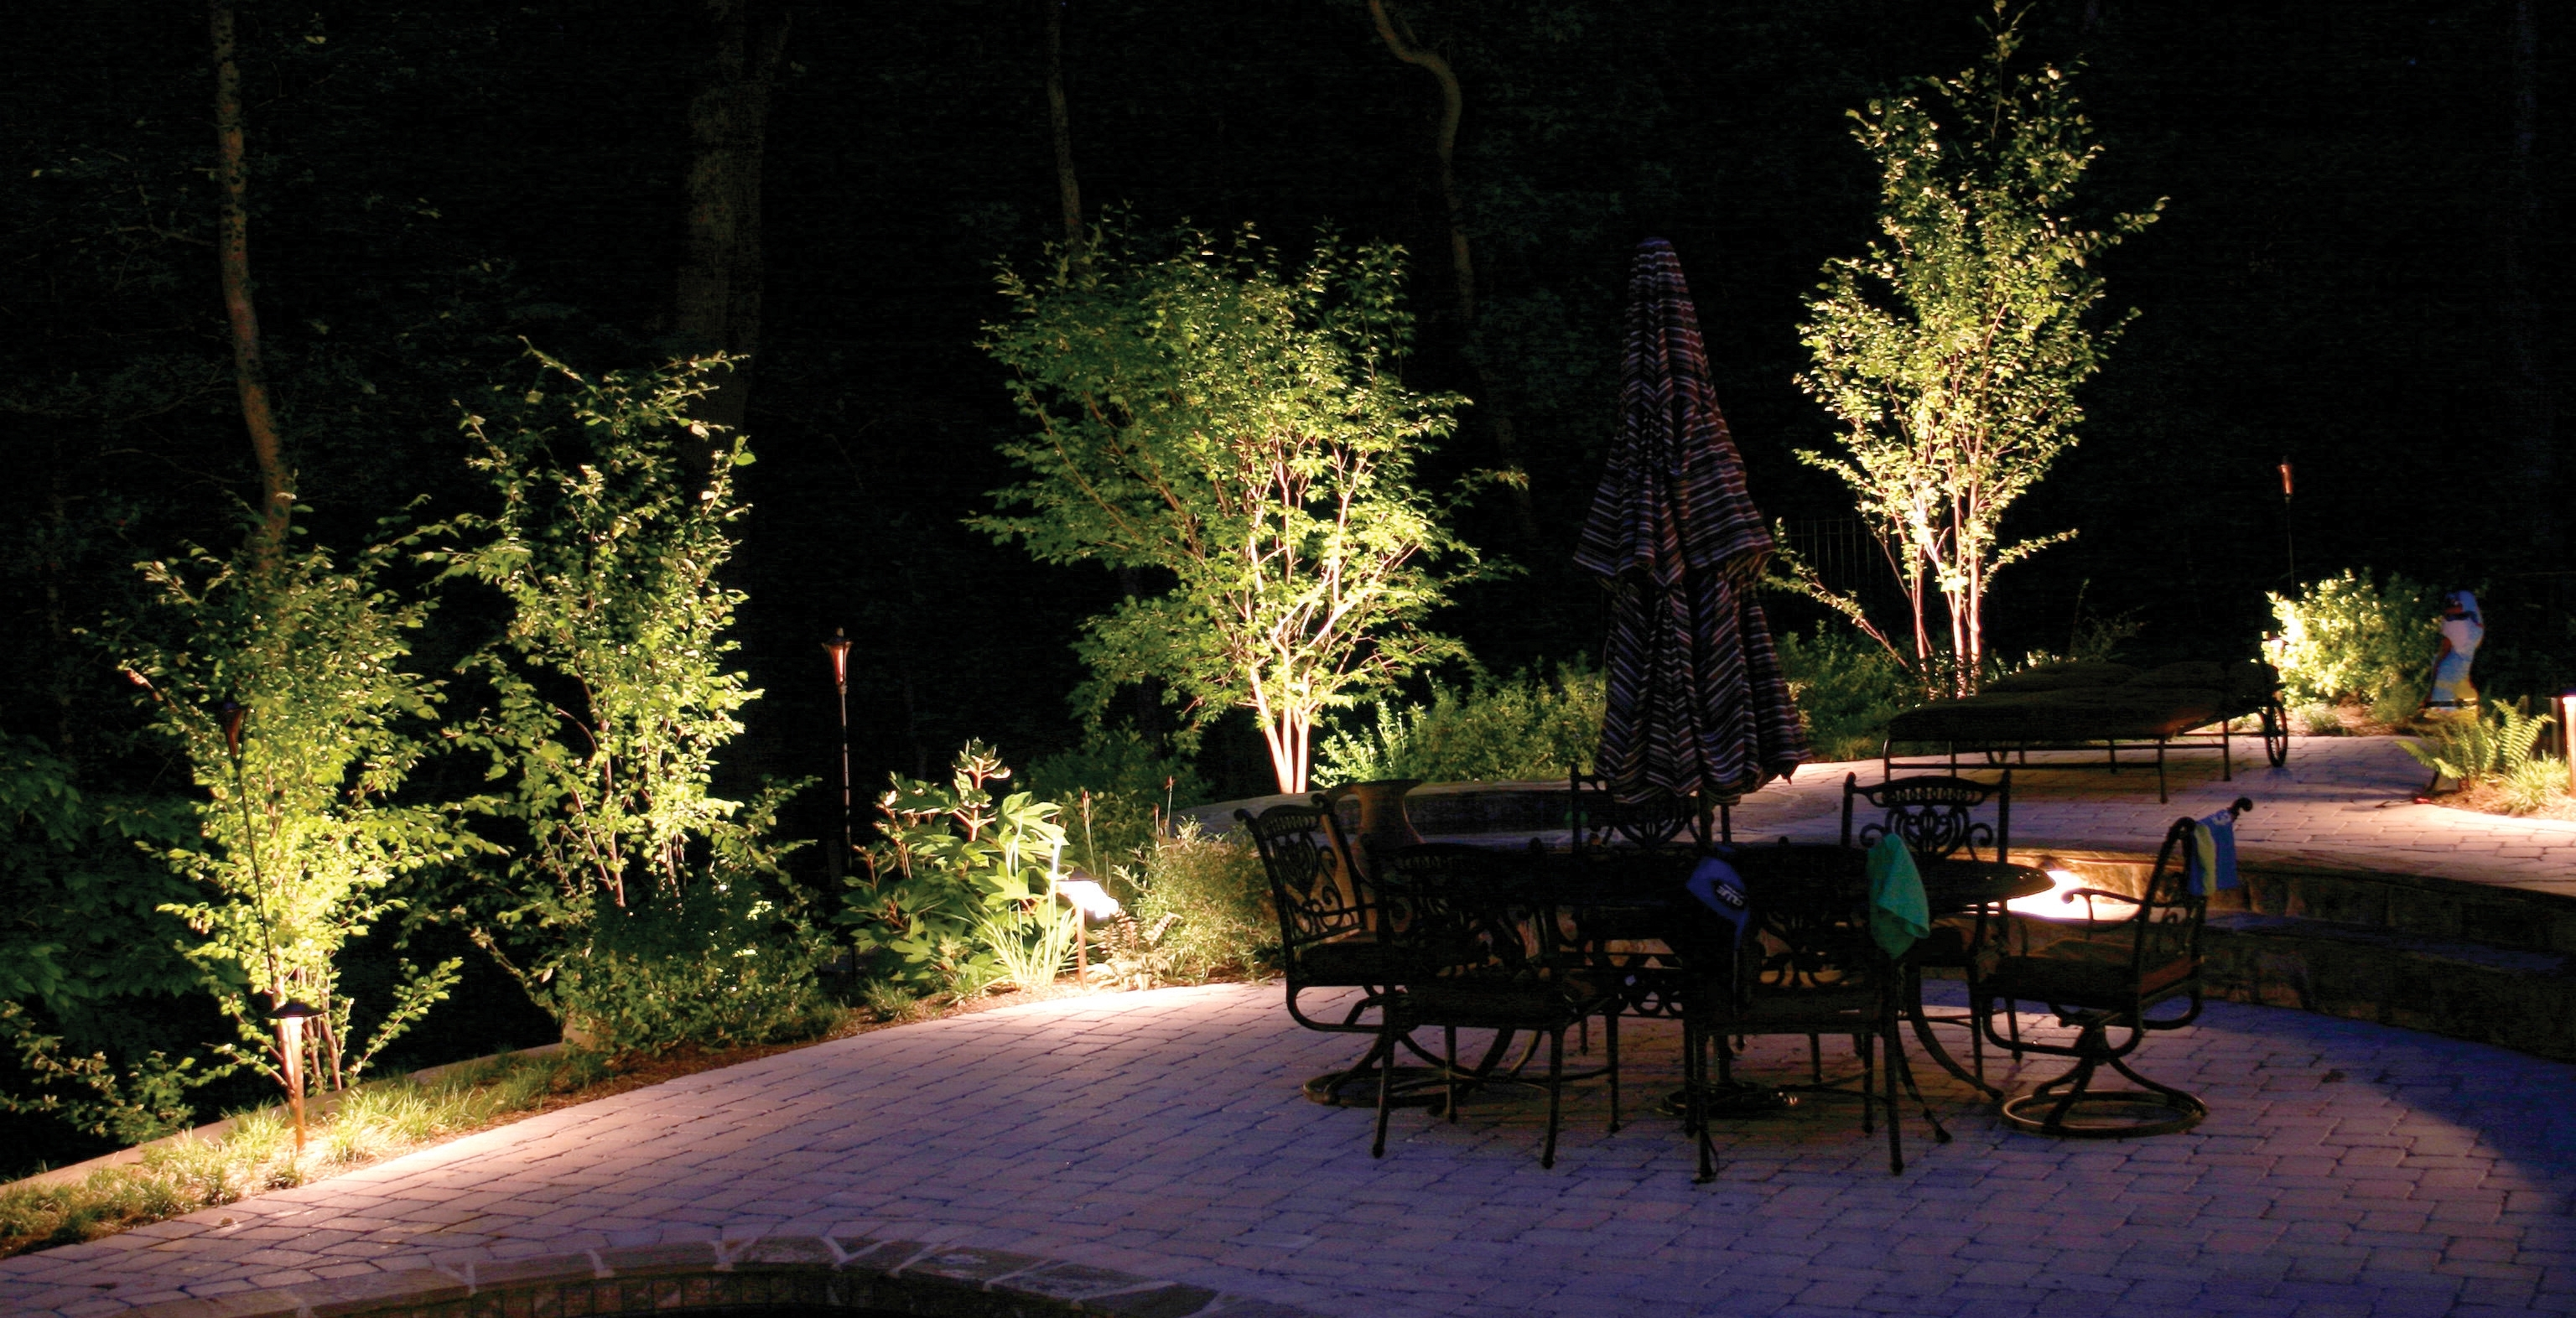 Outdoor Lanterns For Trees Within 2018 Charlotte Trees Light At Night With Outdoor Lighting – Home Lighting (View 12 of 20)